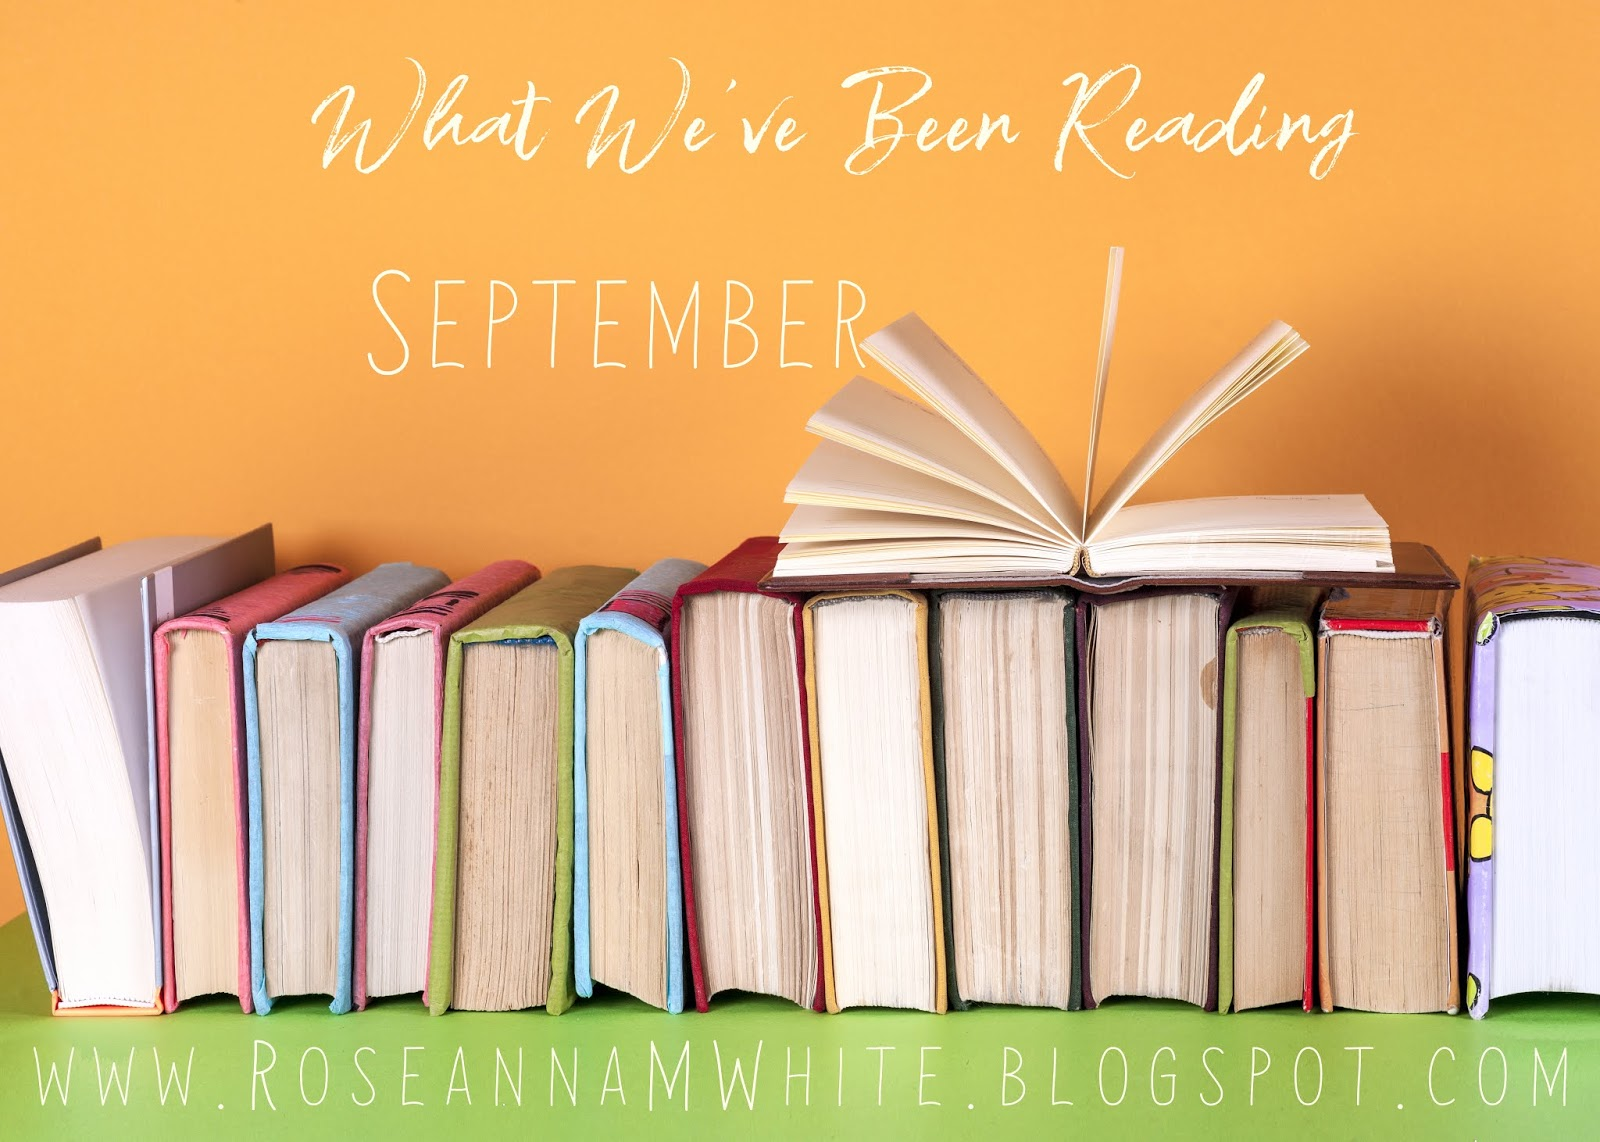 What We've Been Reading – September